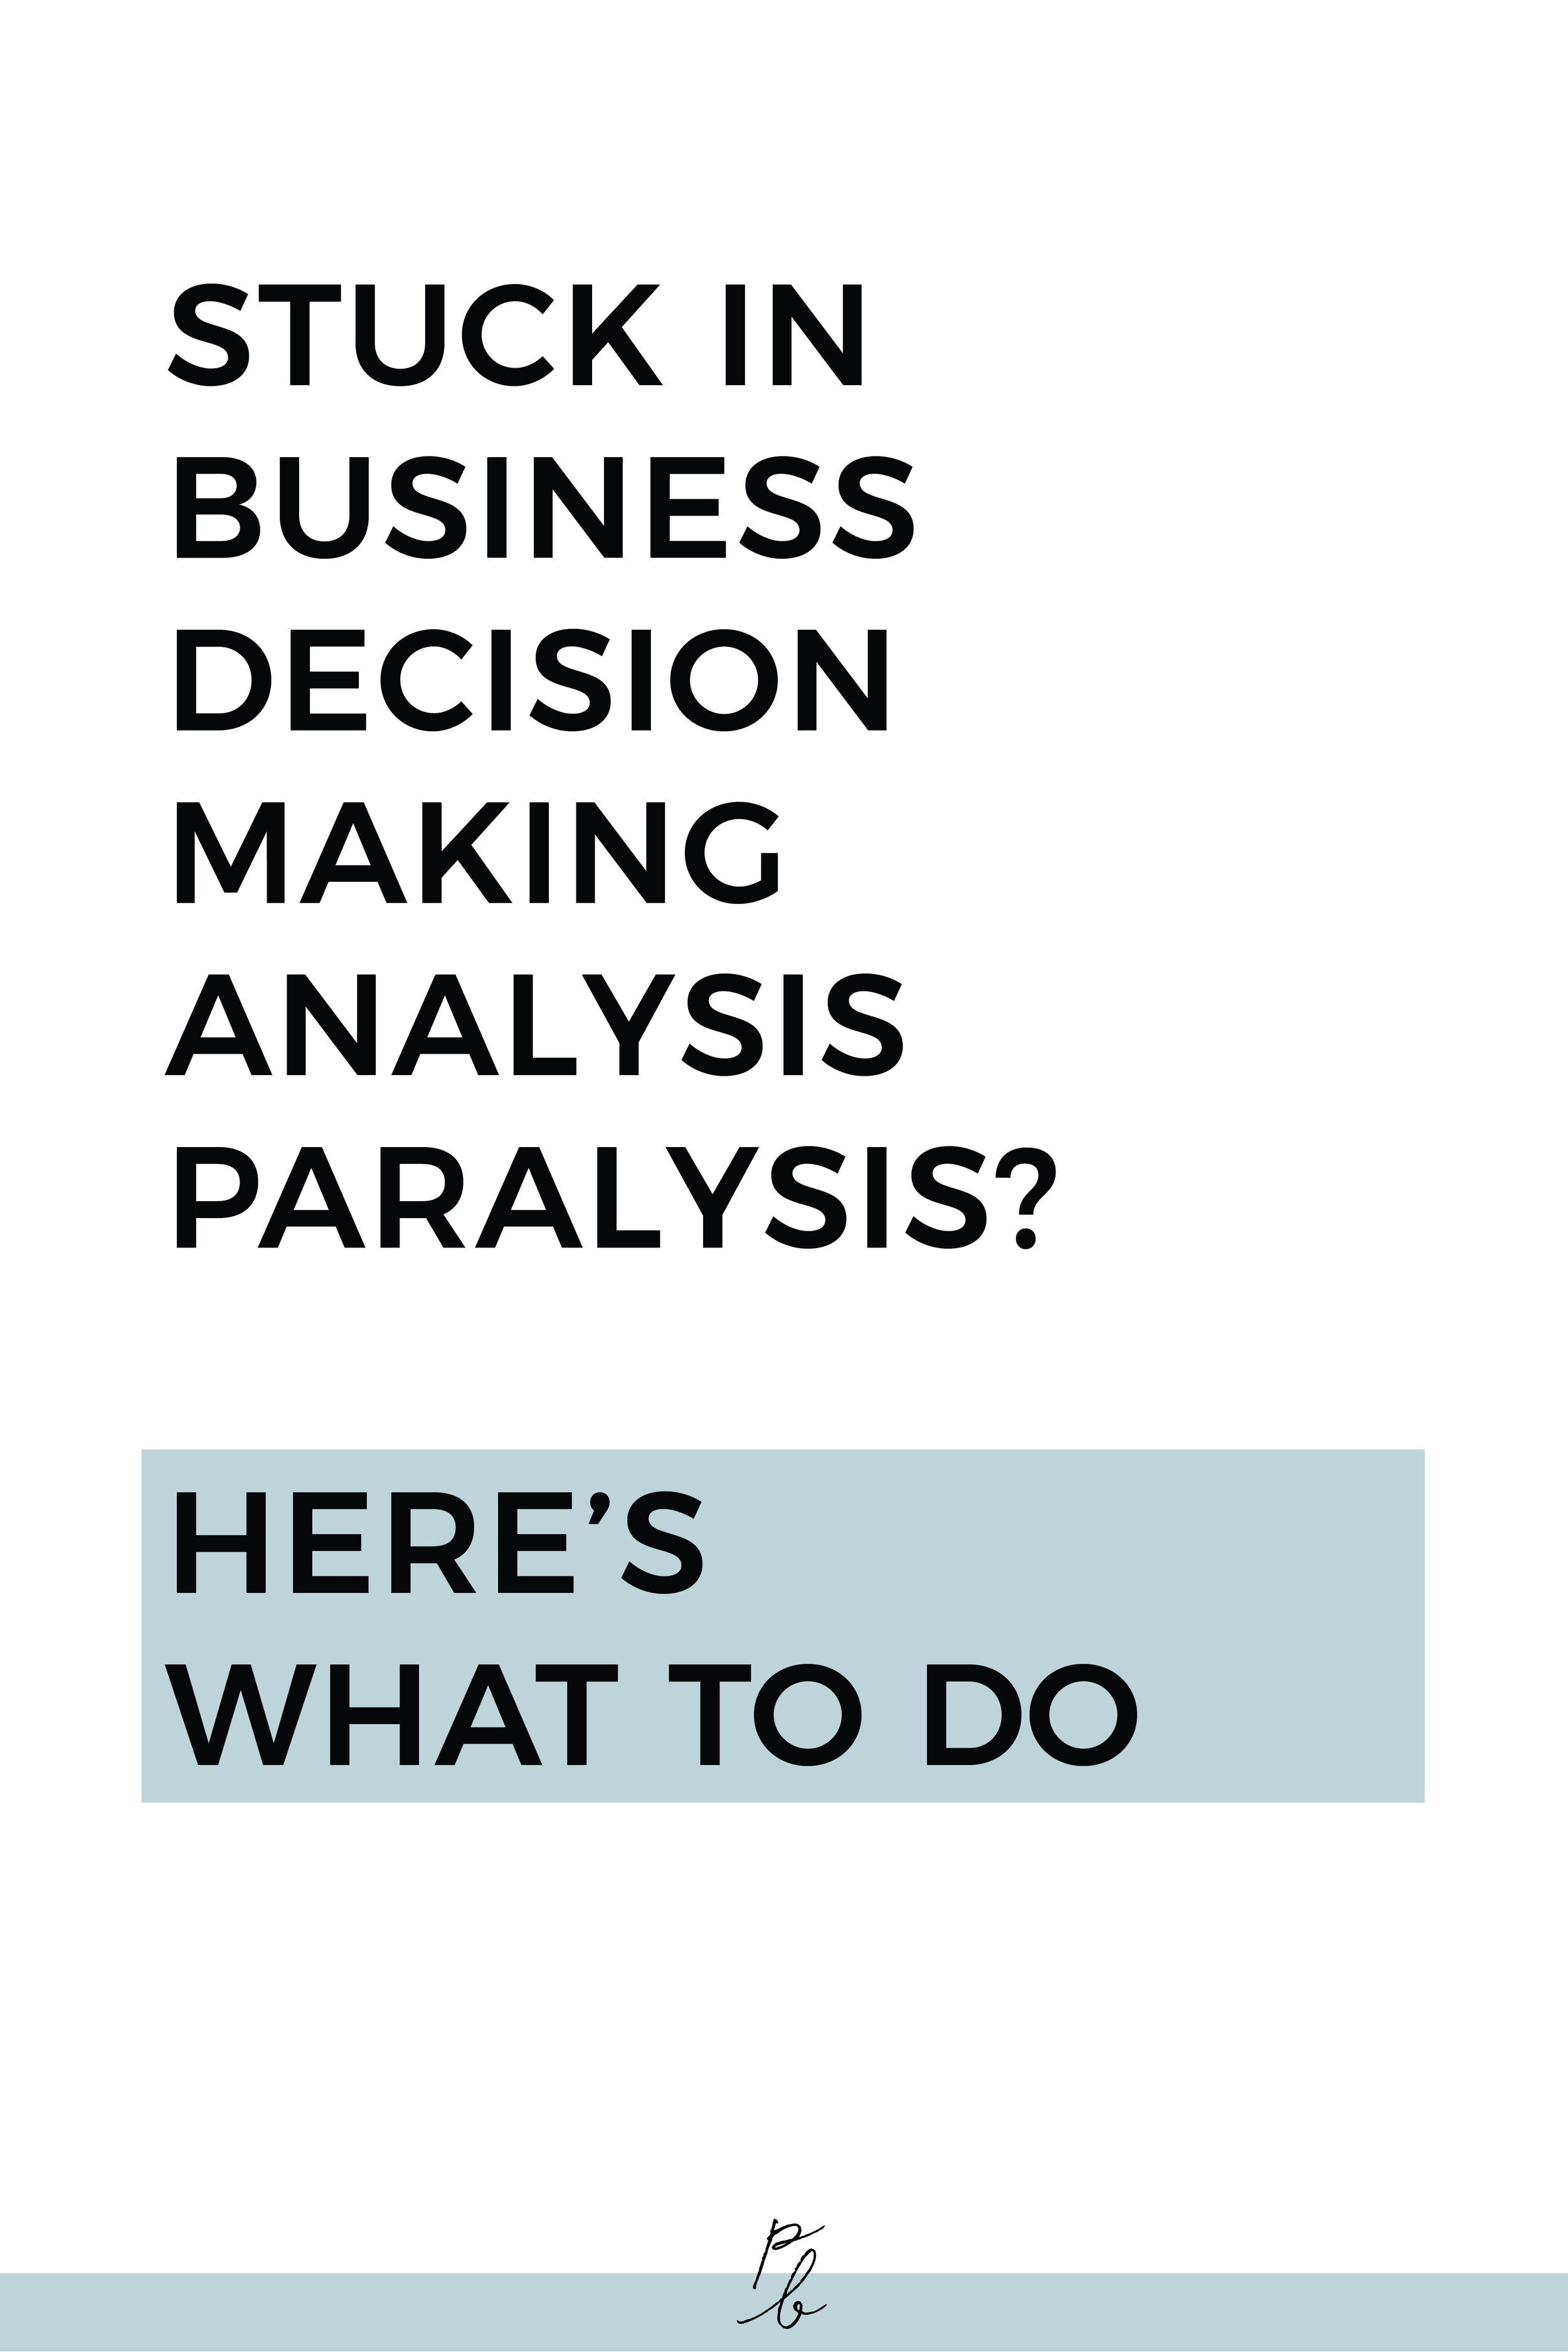 stuck in business decision making analysis paralyis? here's what to do.png